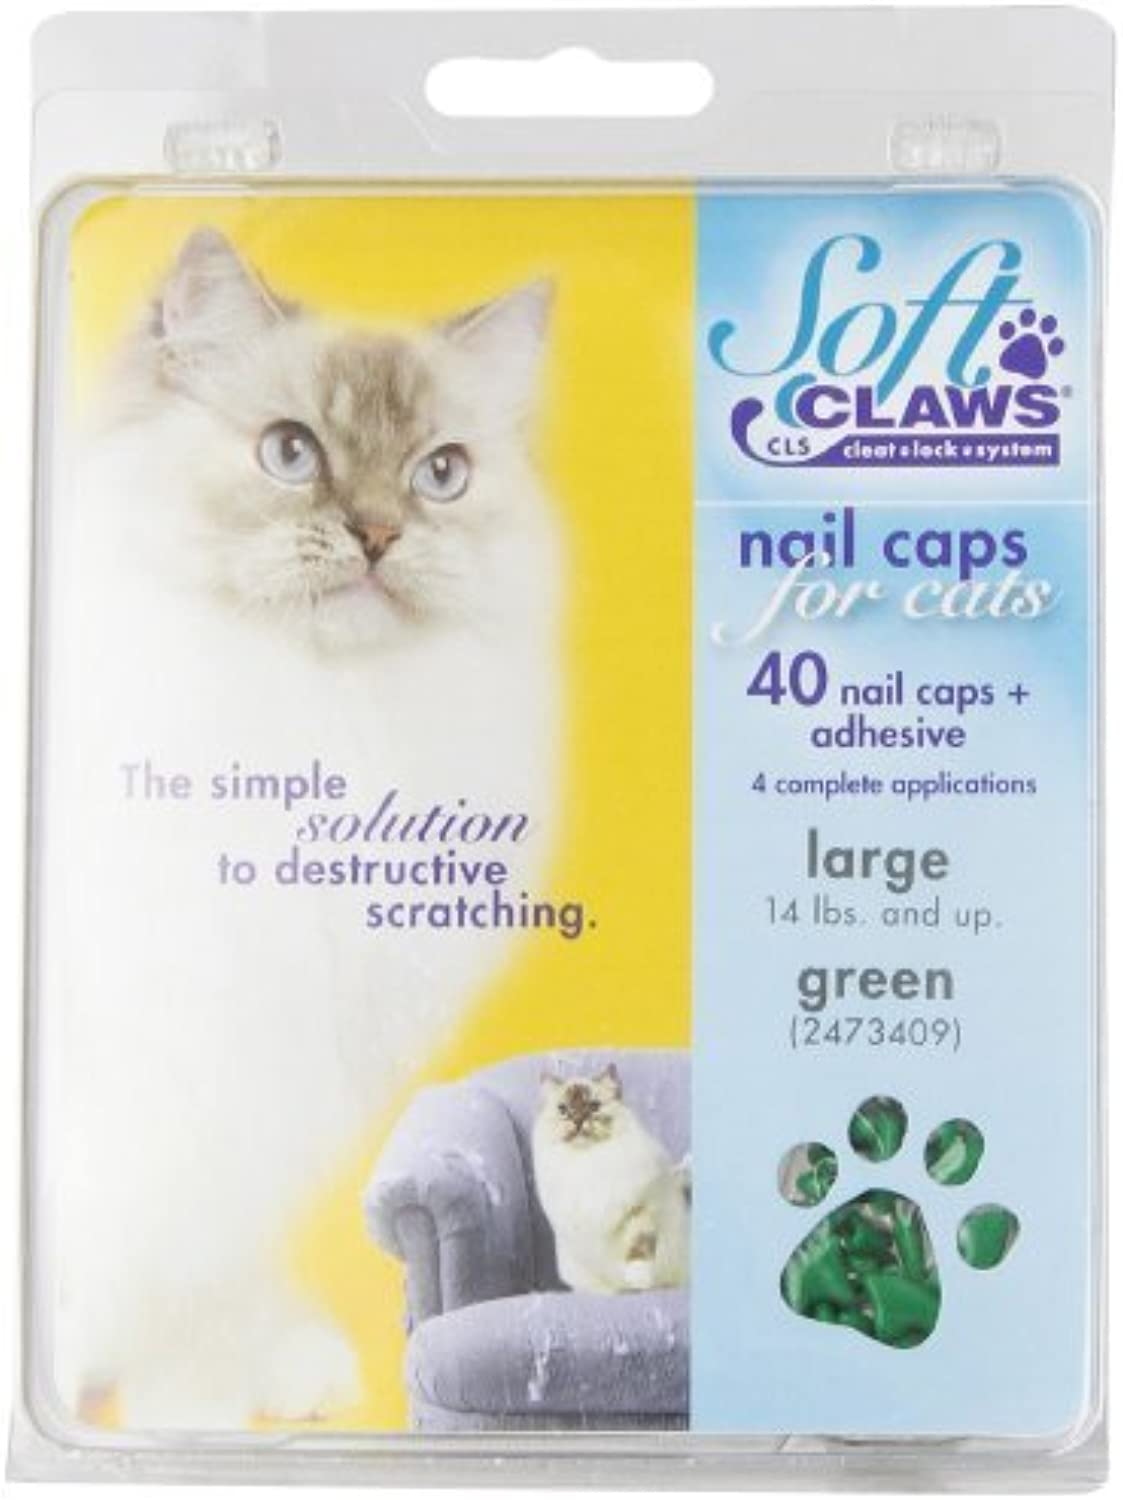 Feline Soft Claws Cat Nail Caps TakeHome Kit, Large, Green by Soft Claws